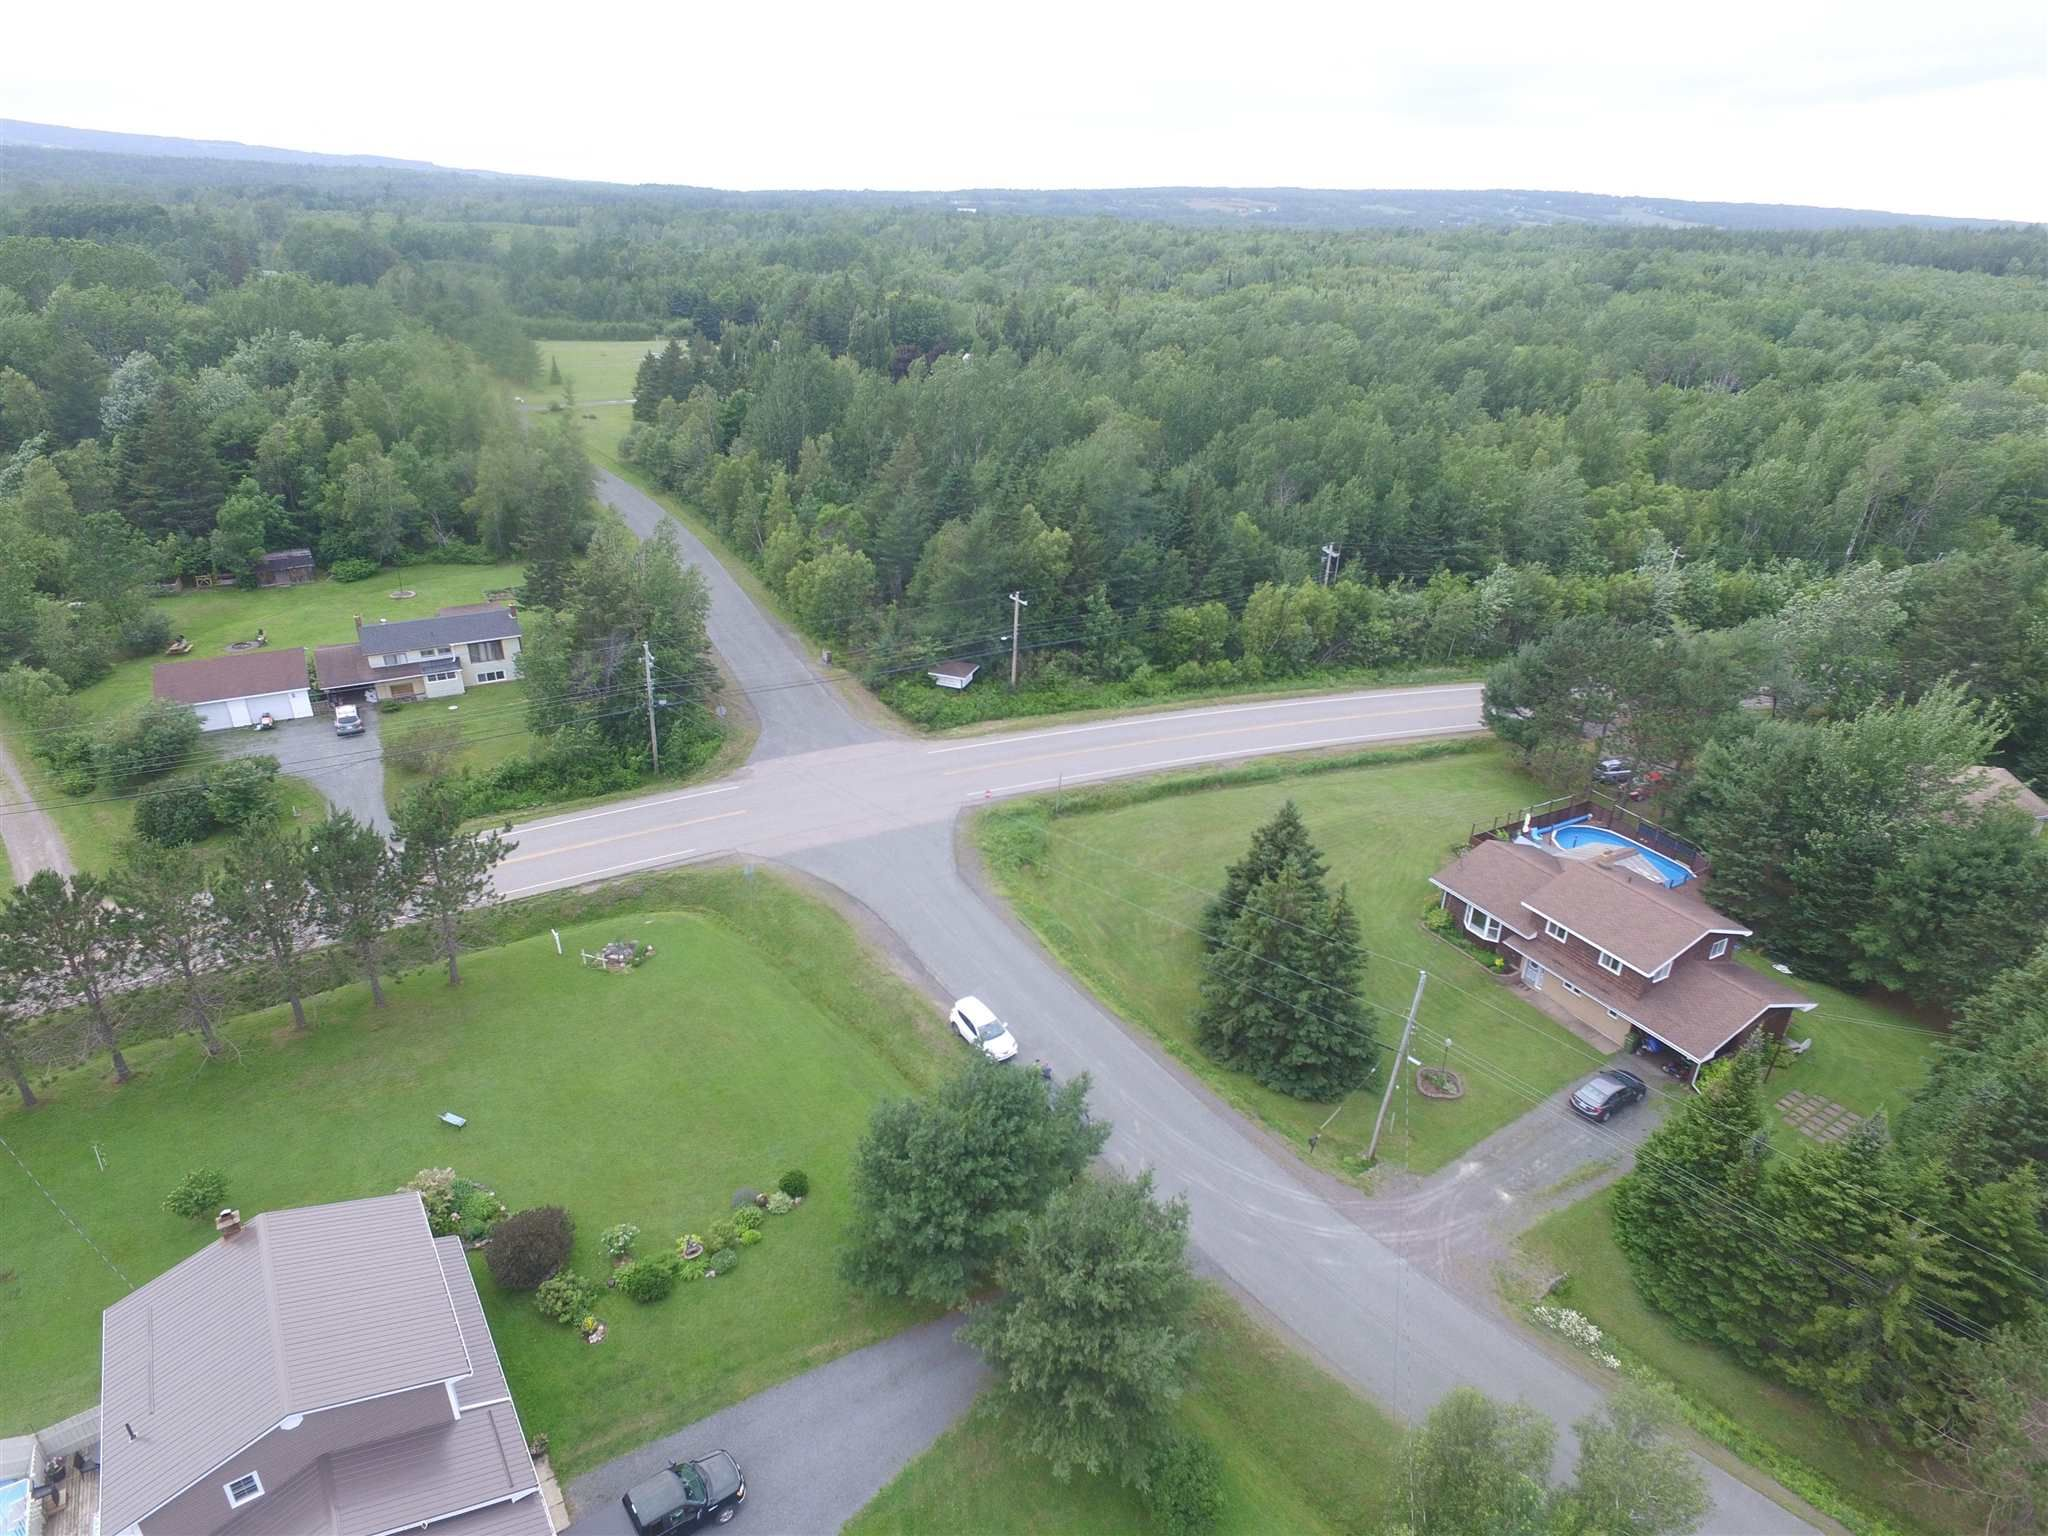 Main Photo: Lot 2 Quarry Brook Drive in Durham: 108-Rural Pictou County Vacant Land for sale (Northern Region)  : MLS®# 202117804